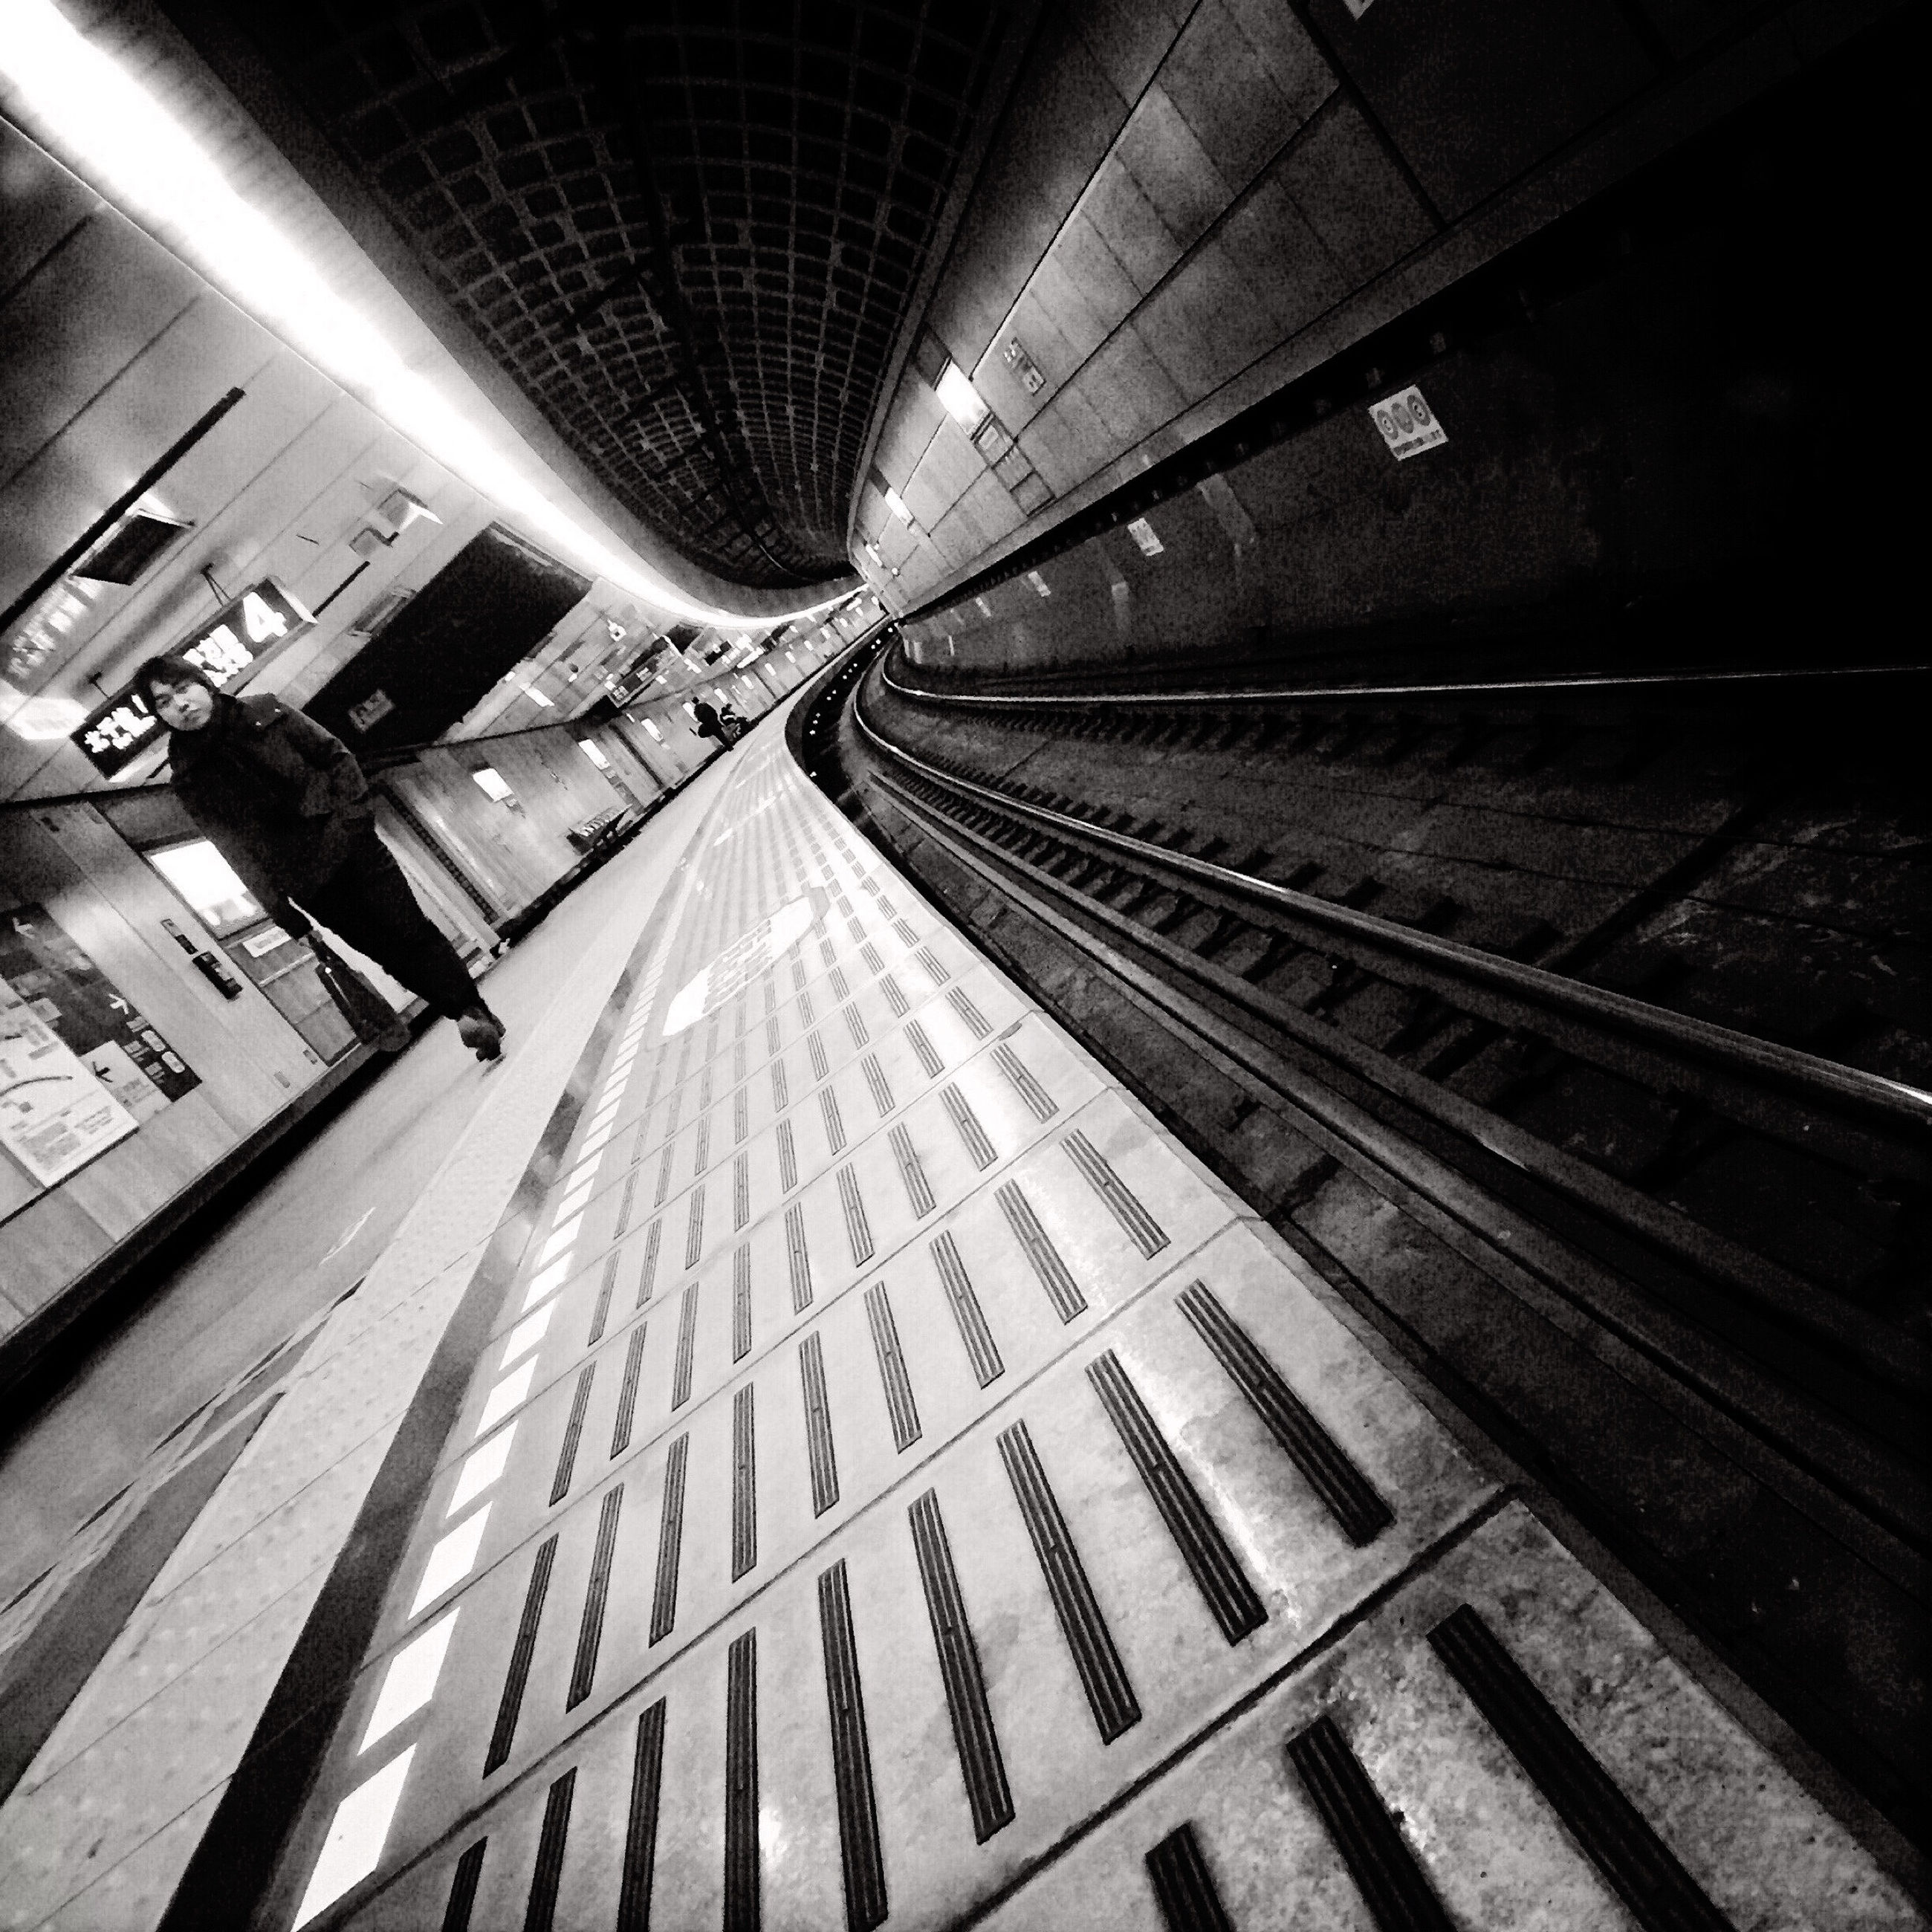 illuminated, ceiling, indoors, night, transportation, the way forward, railroad station, subway station, architecture, built structure, lighting equipment, railroad station platform, subway, diminishing perspective, incidental people, travel, public transportation, rail transportation, vanishing point, tunnel